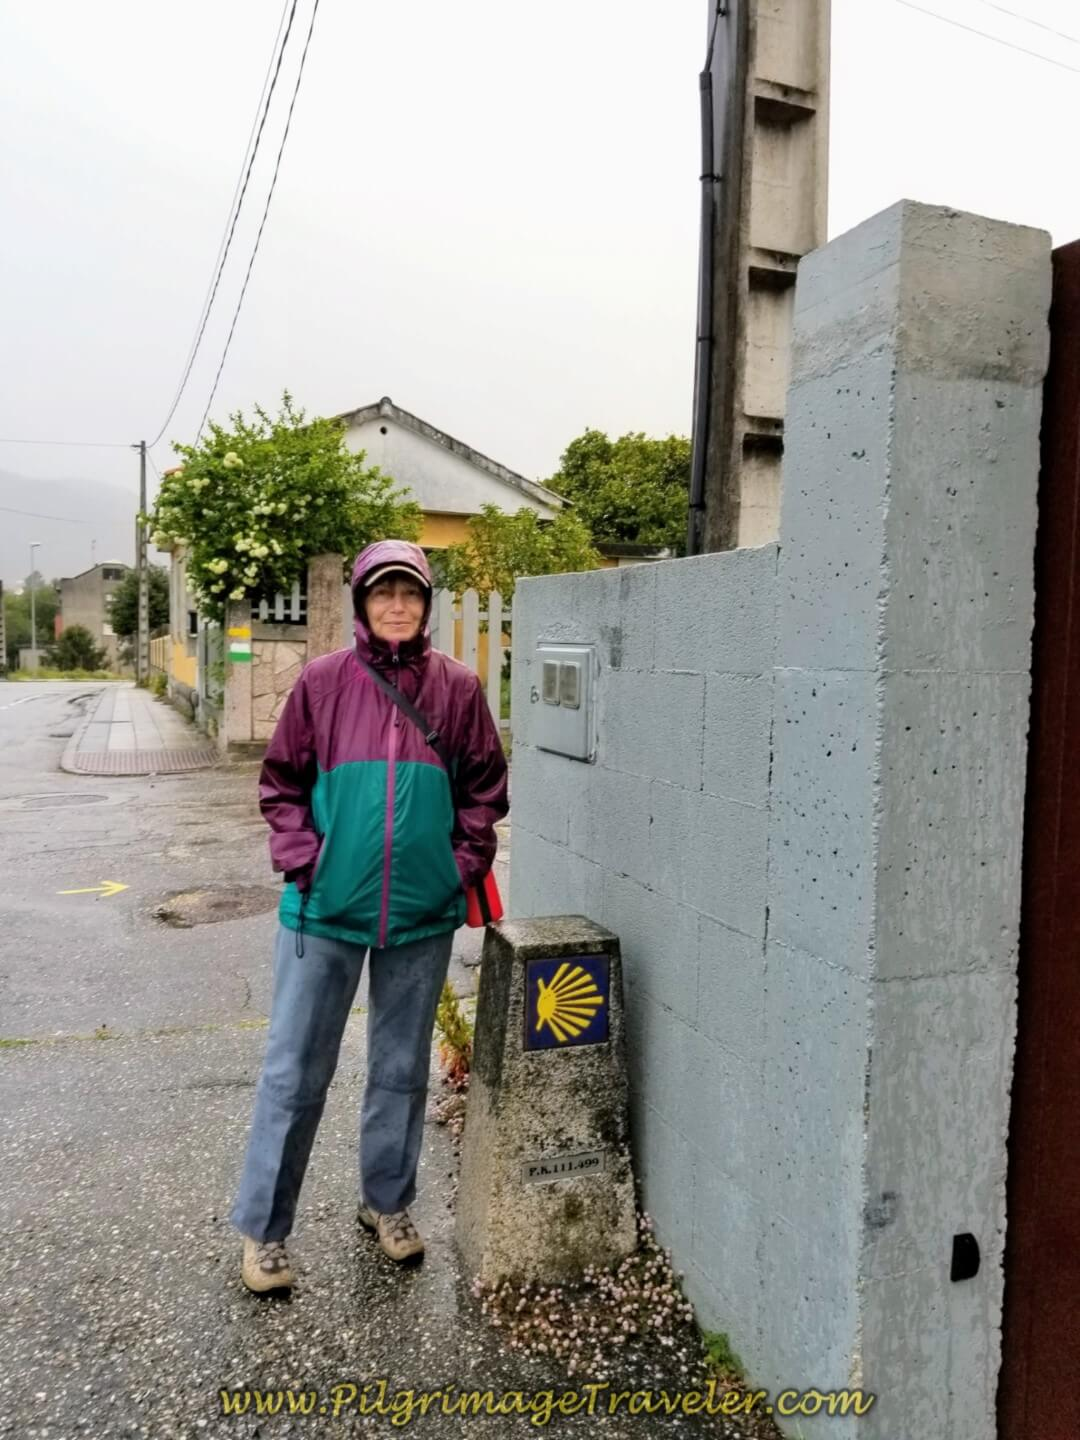 Glyvia at 111.5 Kilometer Waymark in the town of Virxe do Caminño on day twenty on the central route of the Portuguese Camino